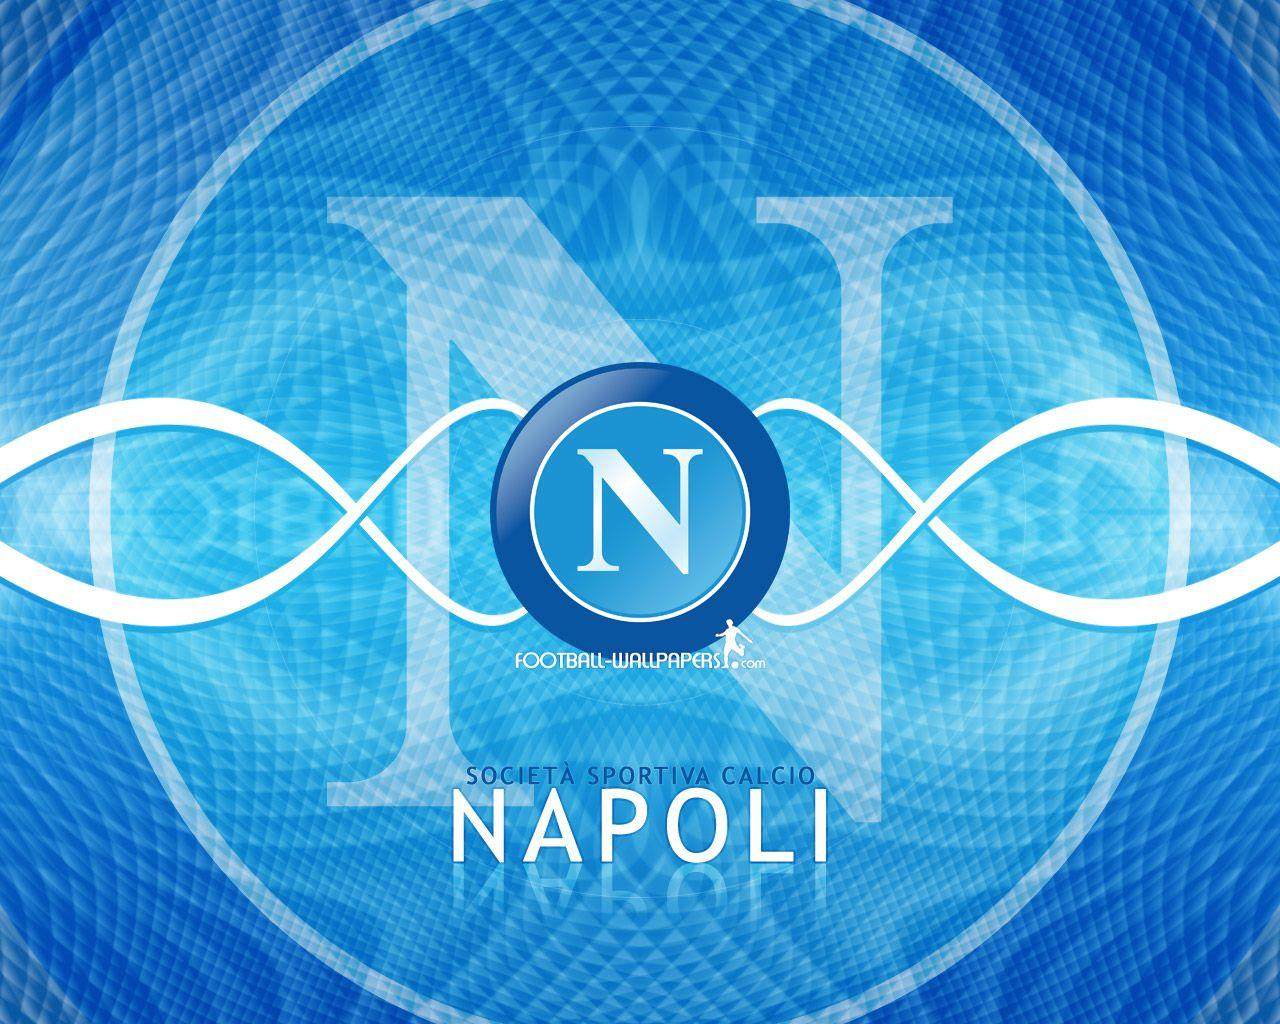 1280x1024px Napoli Calcio backgrounds and image 5